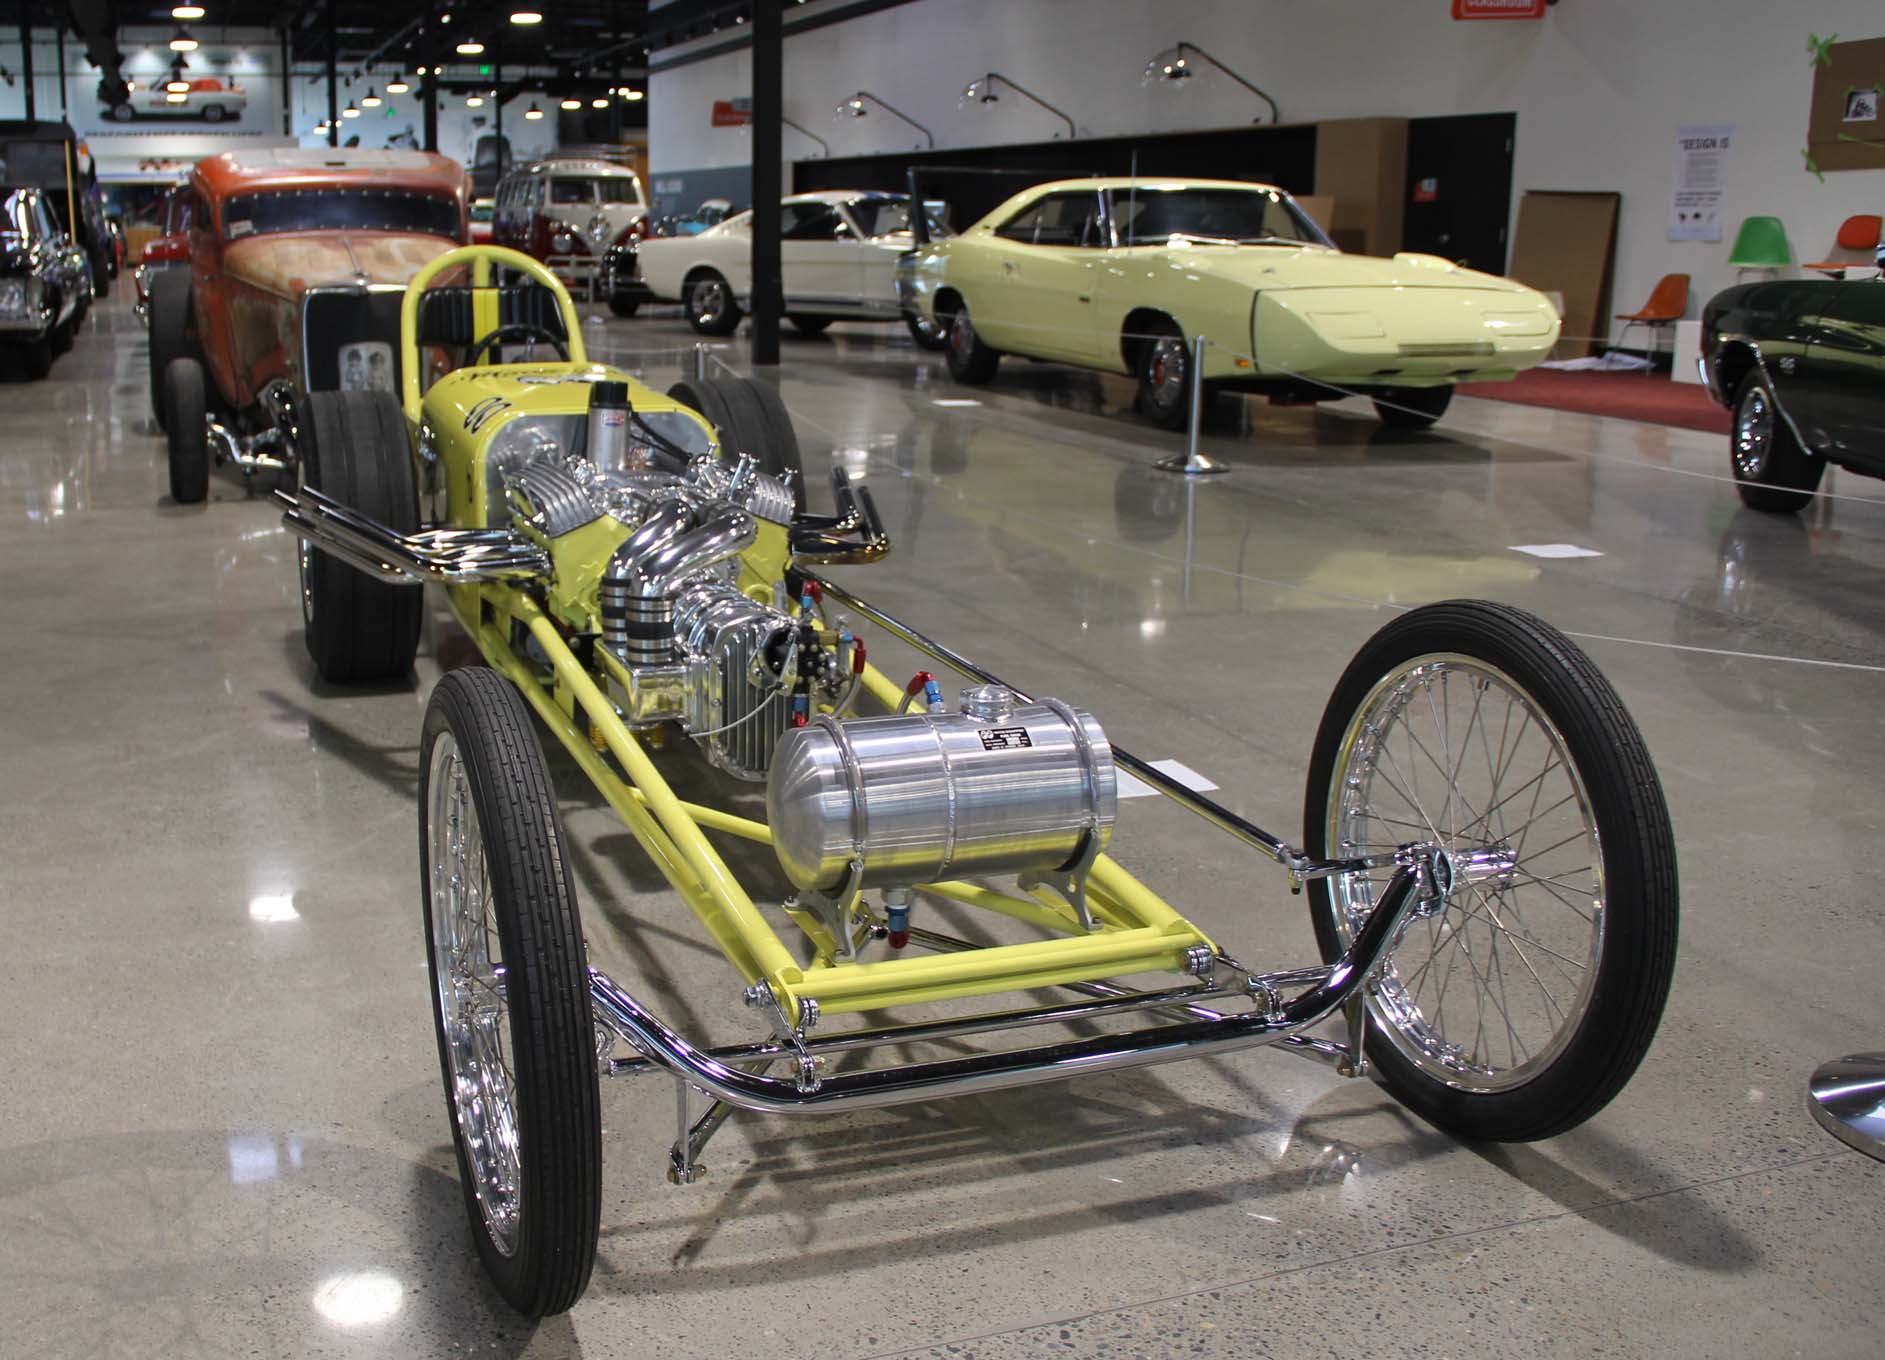 This is an original Moon Equipment dragster with Moon's front-mounted blower setup and iconic aluminum tank, recently restored by the museum.